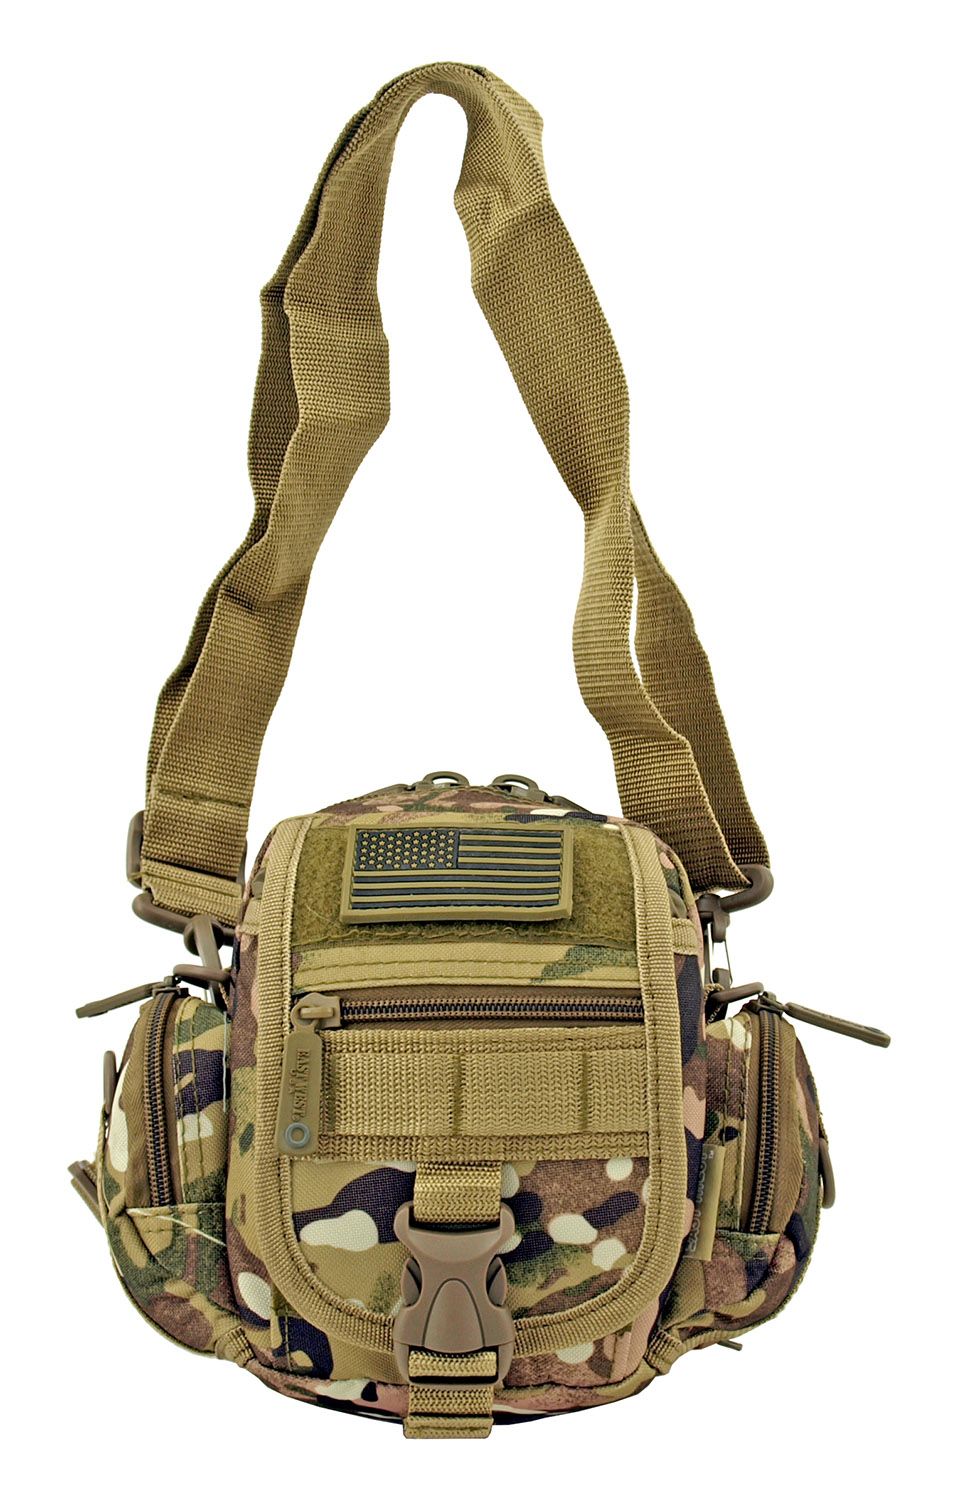 Multi-Functional Tactical Utility Backpack Fanny Pack - Hunting Woodland Camo